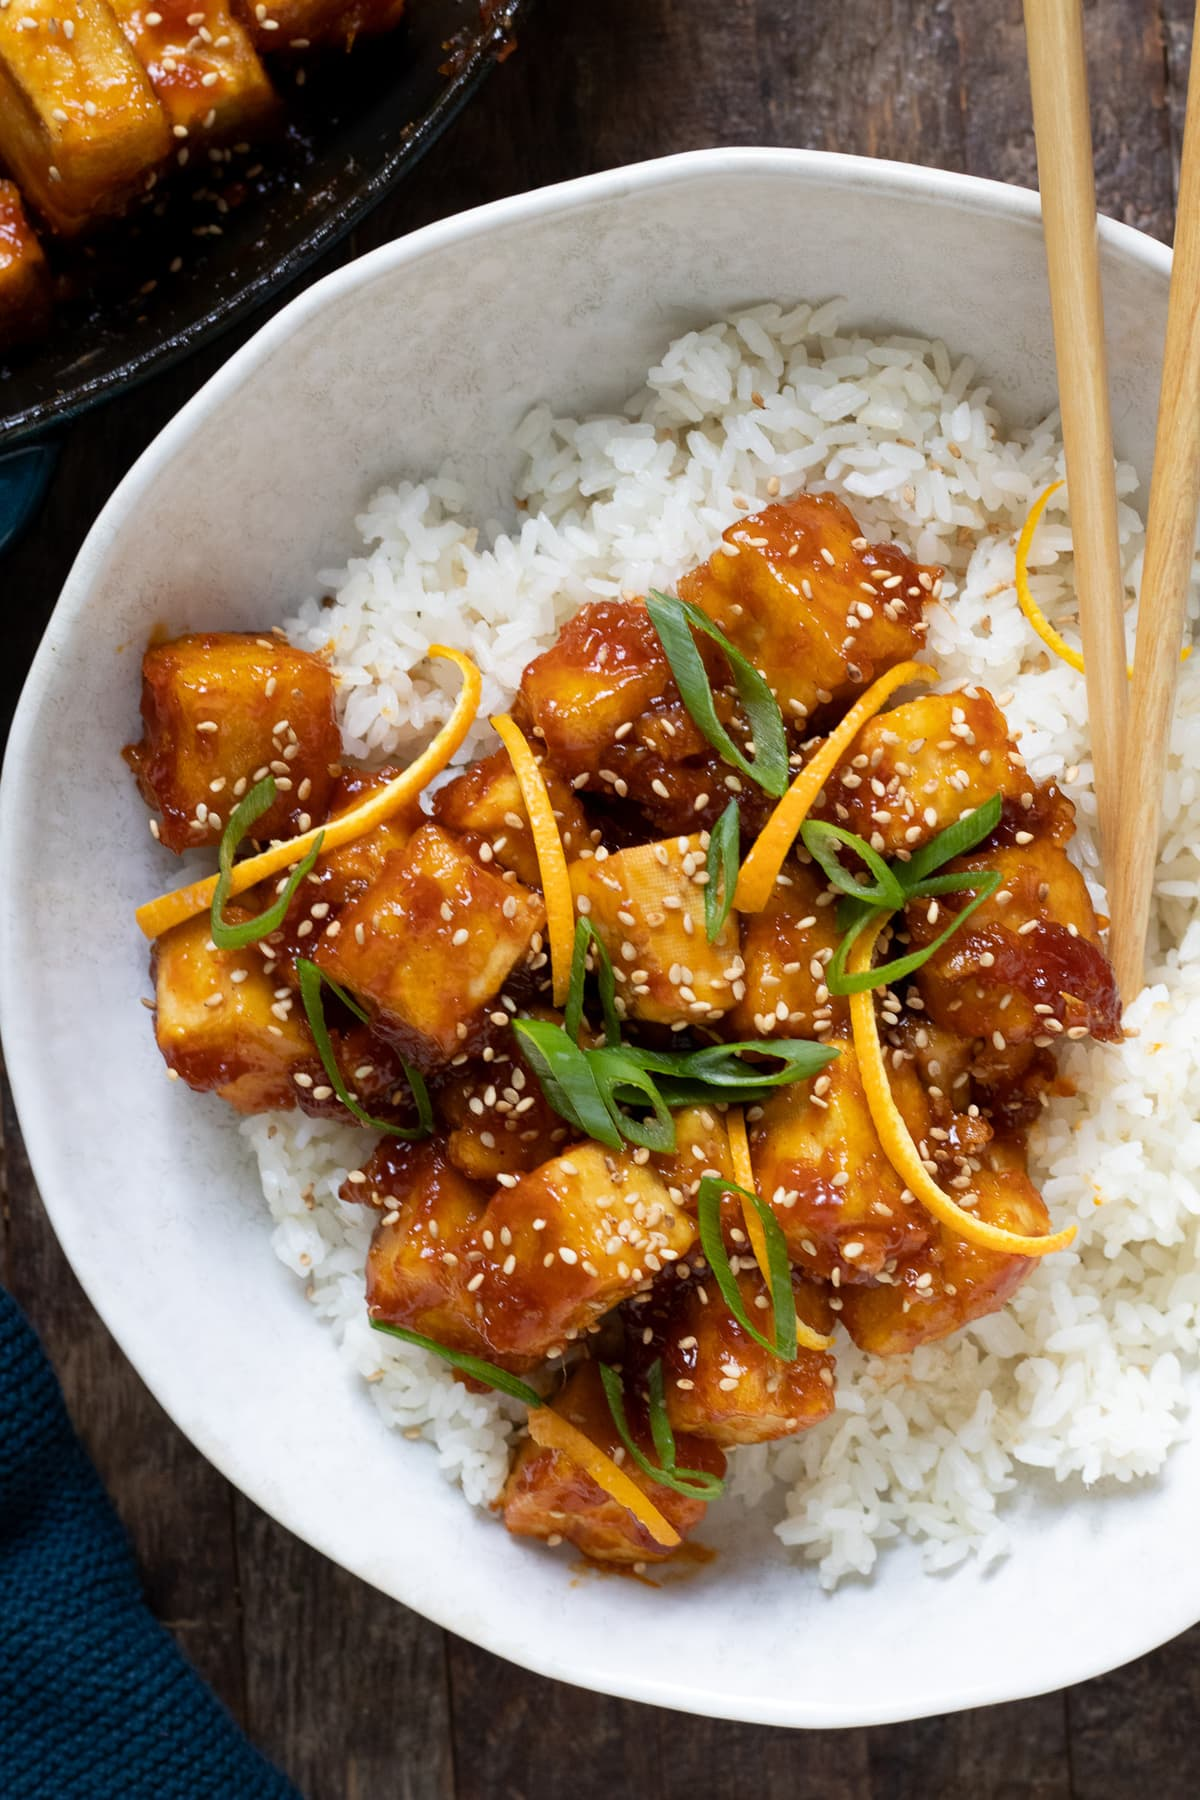 Orange chicken sprinkled with sesame seeds in large white bowl over white rice